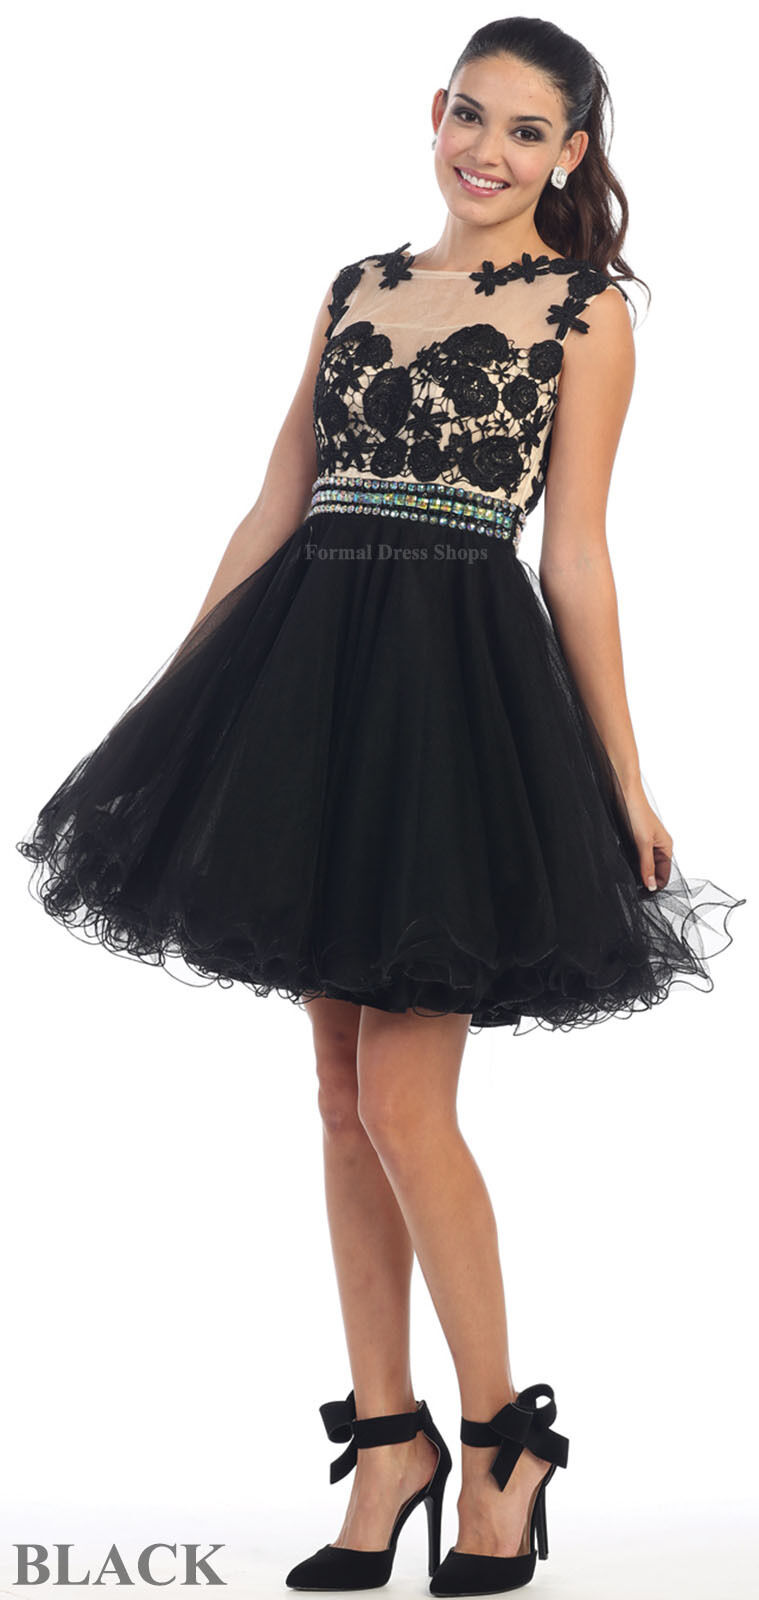 626a7a6120 Details about SALE SHORT PROM COCKTAIL GRADUATION PARTY HOMECOMING SEMI  FORMAL DRESS UNDER 100